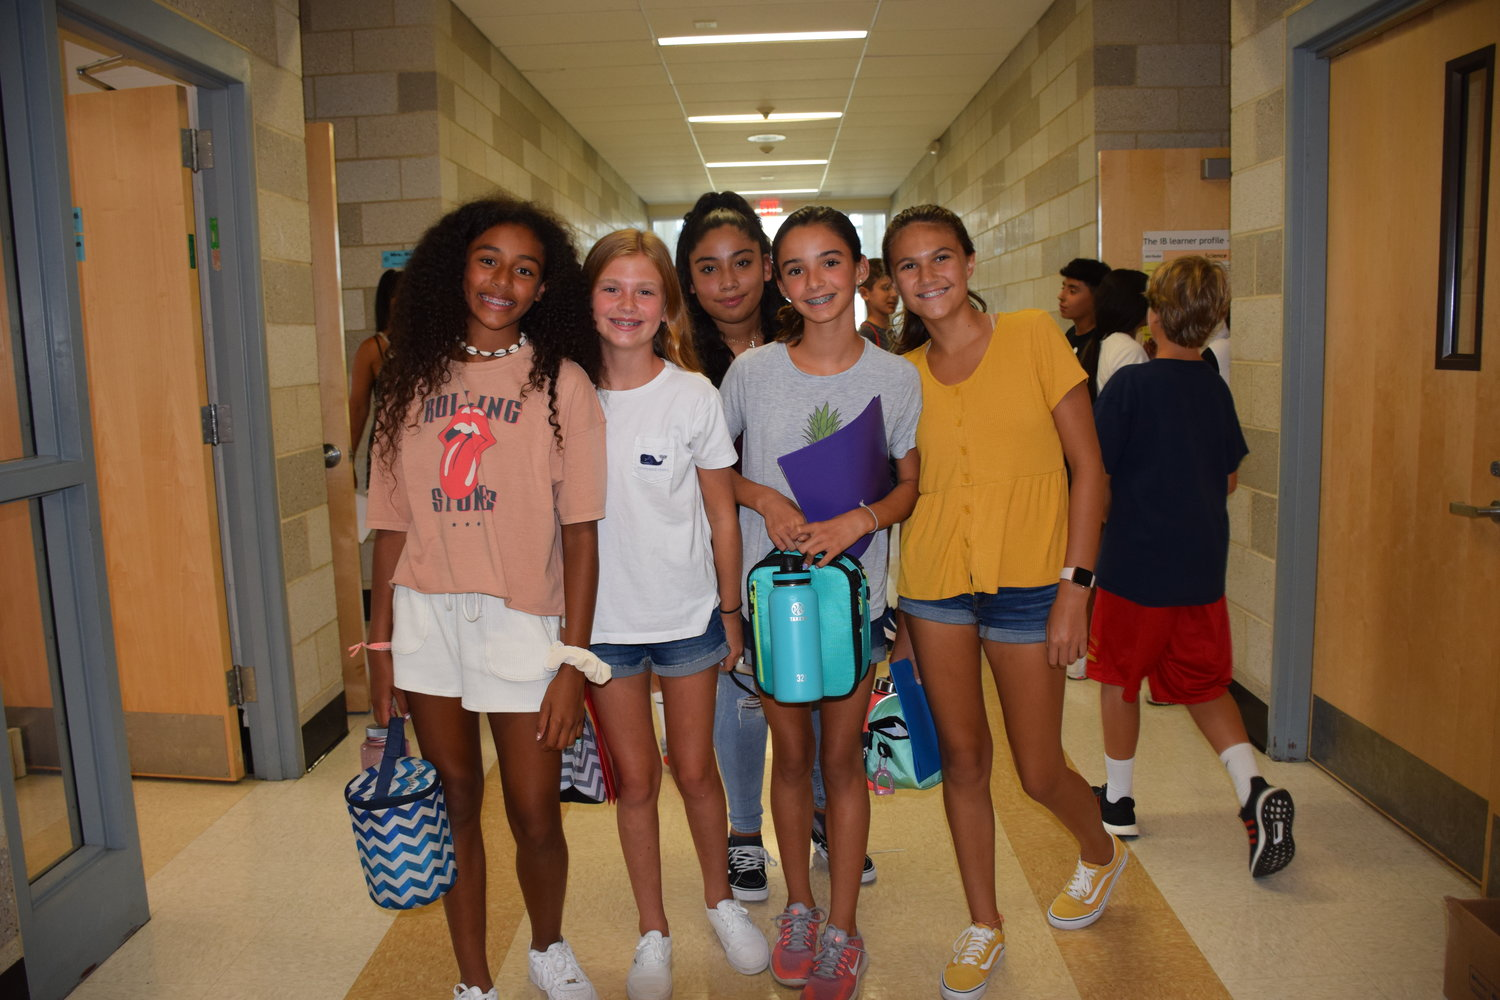 Long Beach Middle school students found their friends as they prepared to go to lunch.